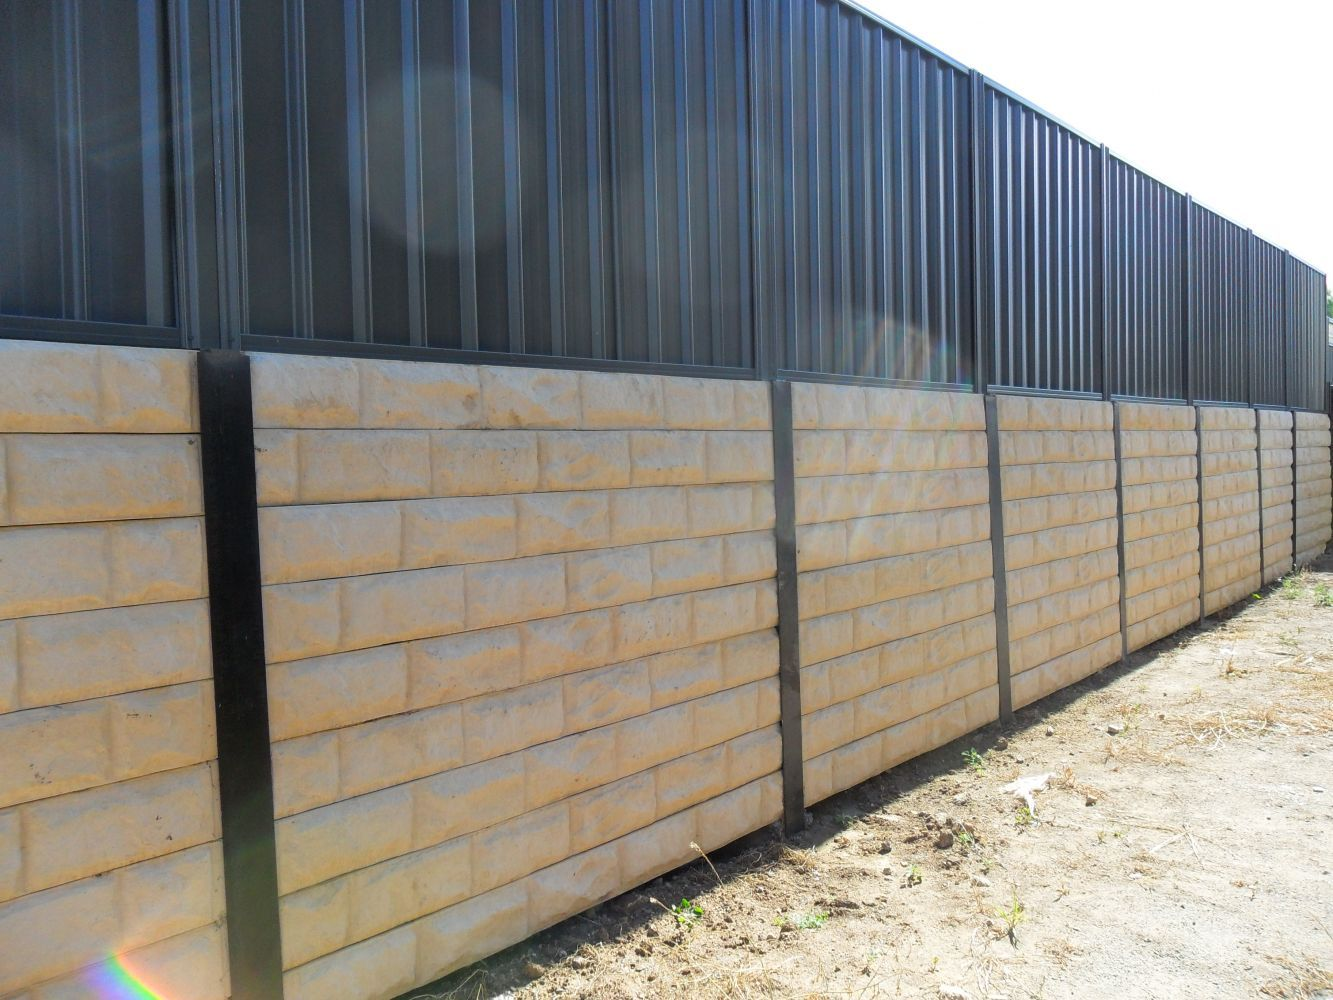 Patterned Sleeper Retaining Wall With Good Neighbour Panel Fence On Top Retaining Wall Good Neighbor Fence Fence